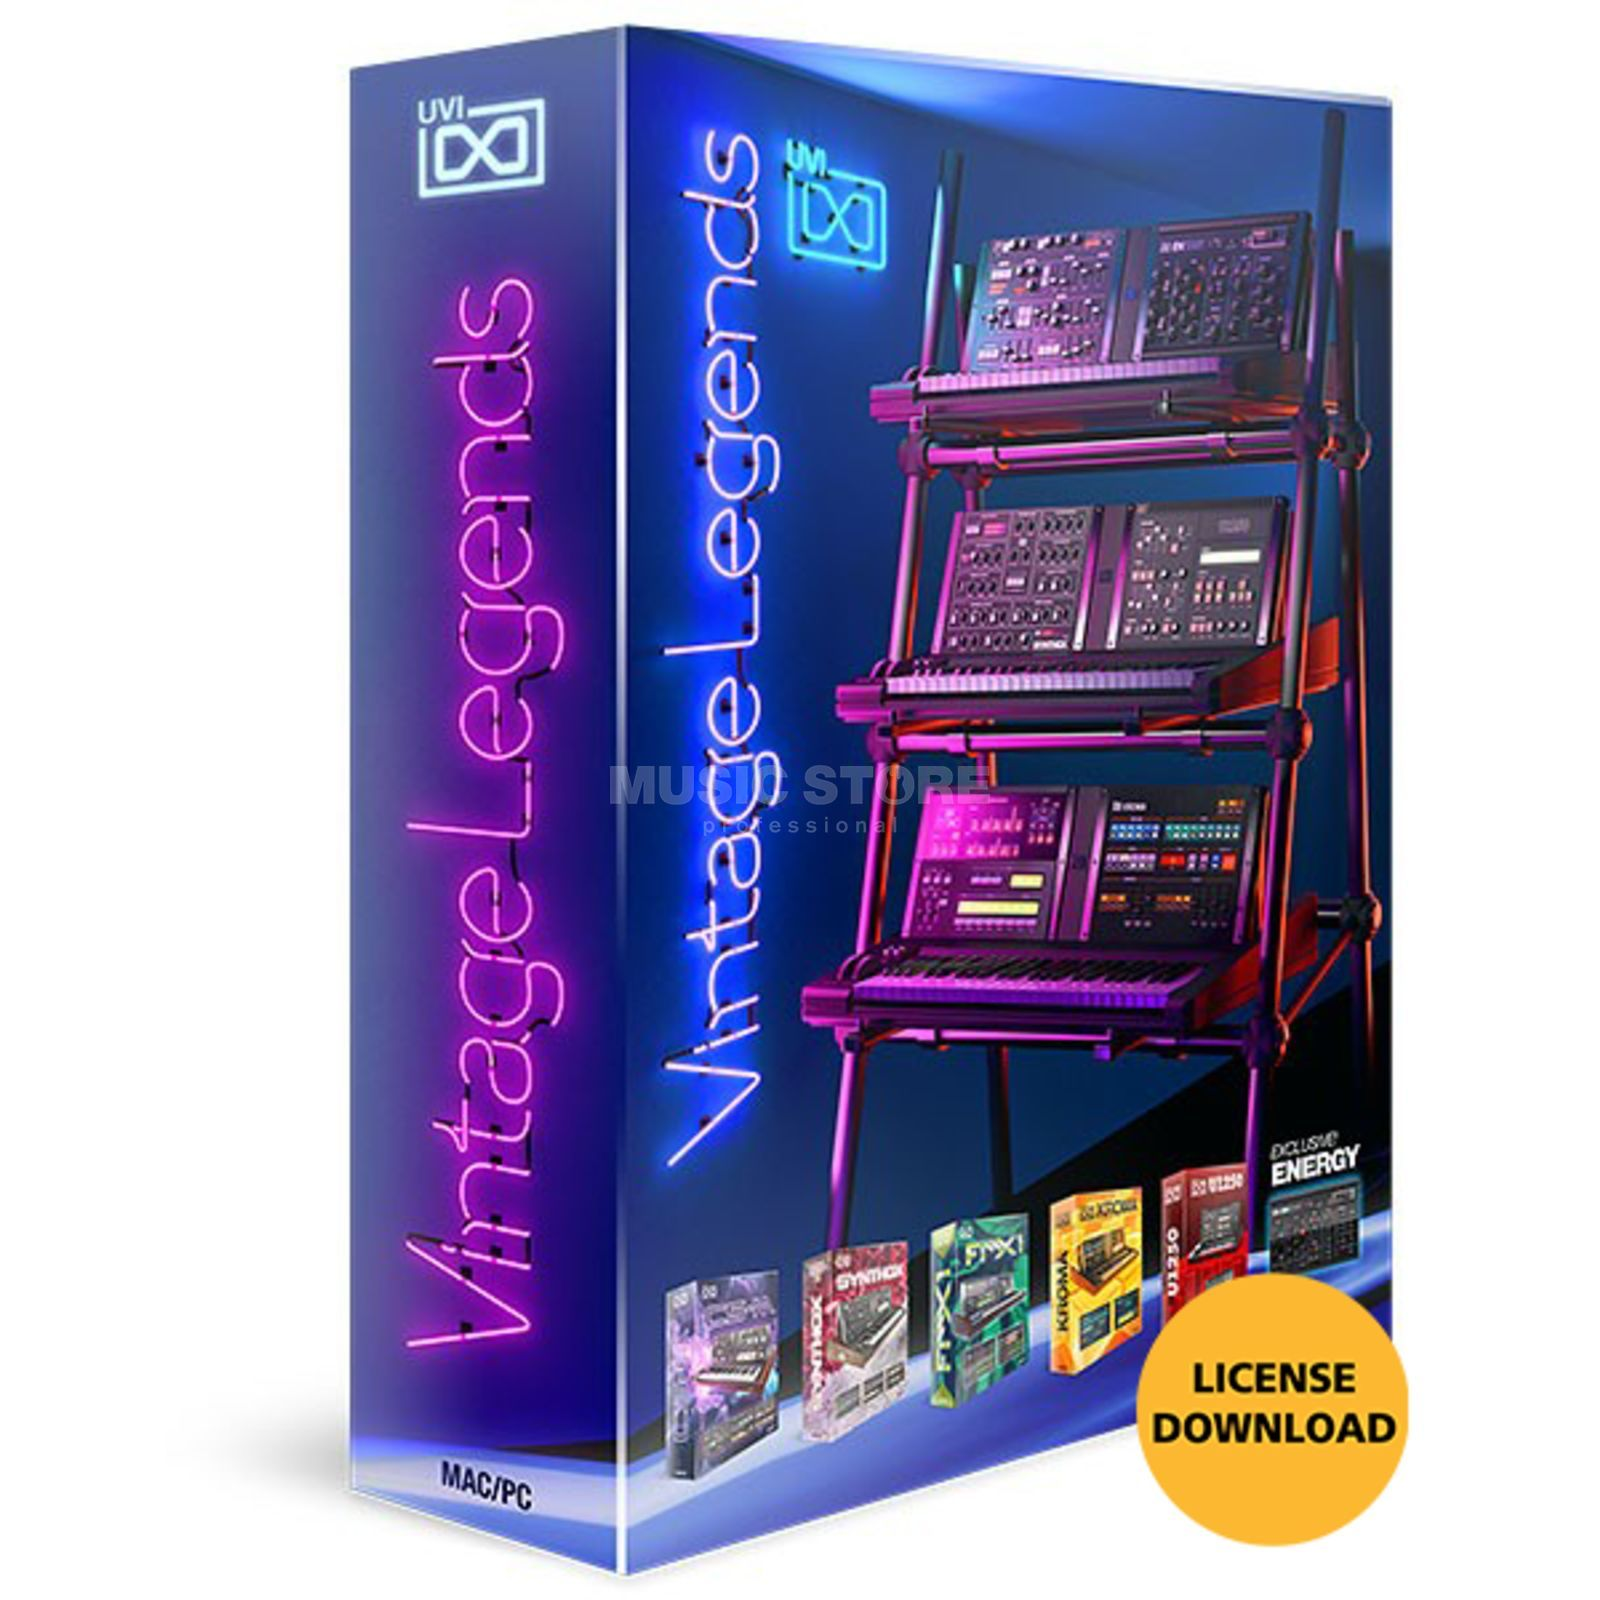 UVI Sounds & Software Vintage Legends  (Lizenz) Software Instrument Produktbild